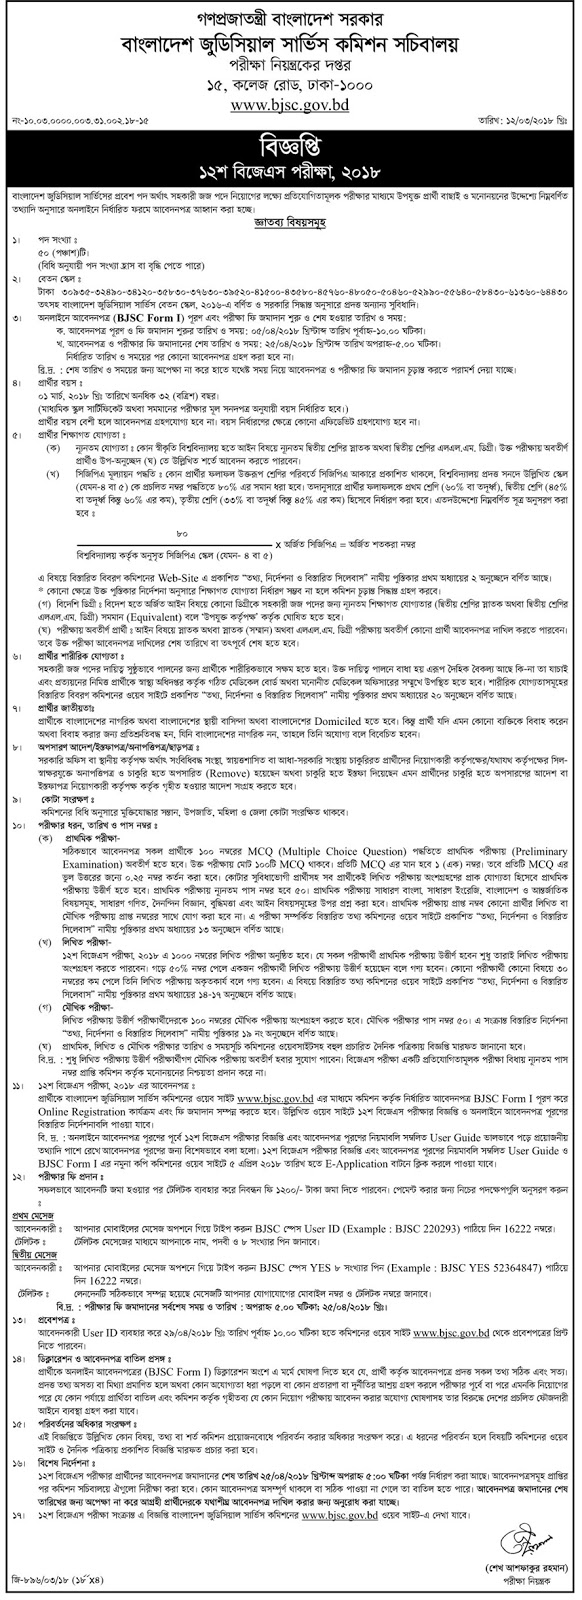 Bangladesh Judicial Service Commission (BJSC) Assistant Judge Recruitment Circular 2018